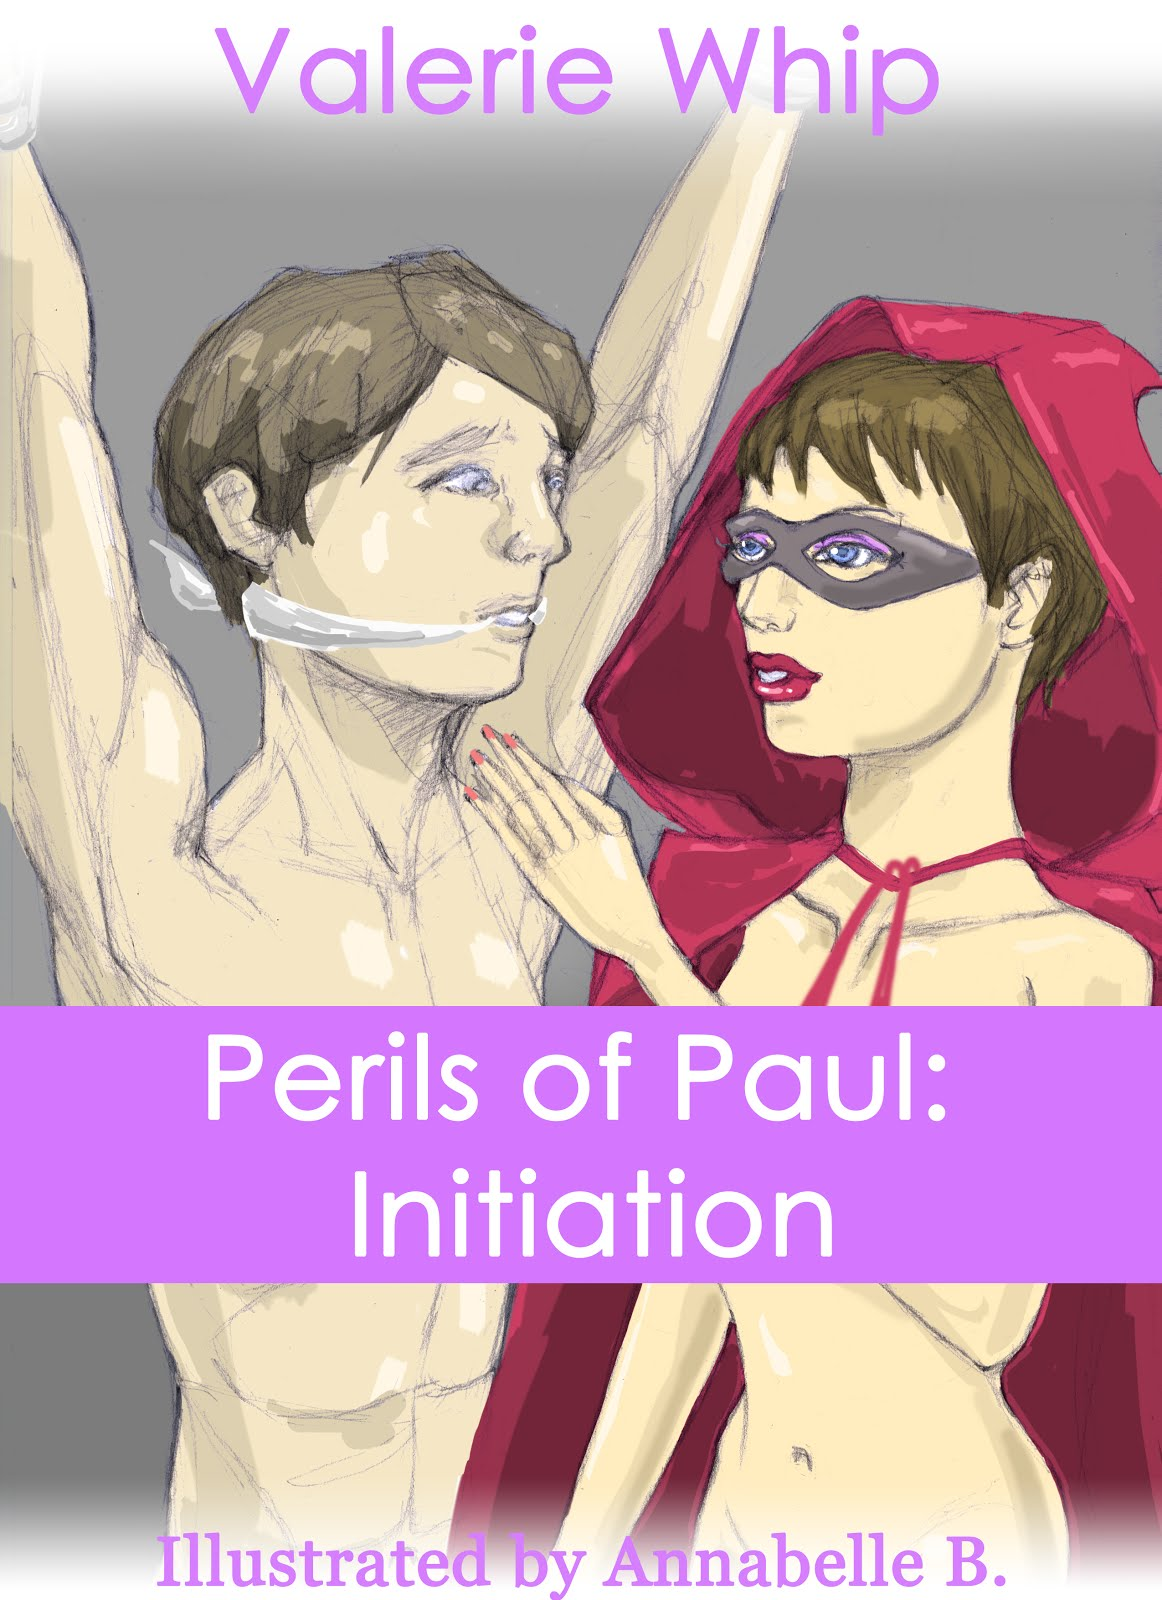 Perils of Paul: Initiation